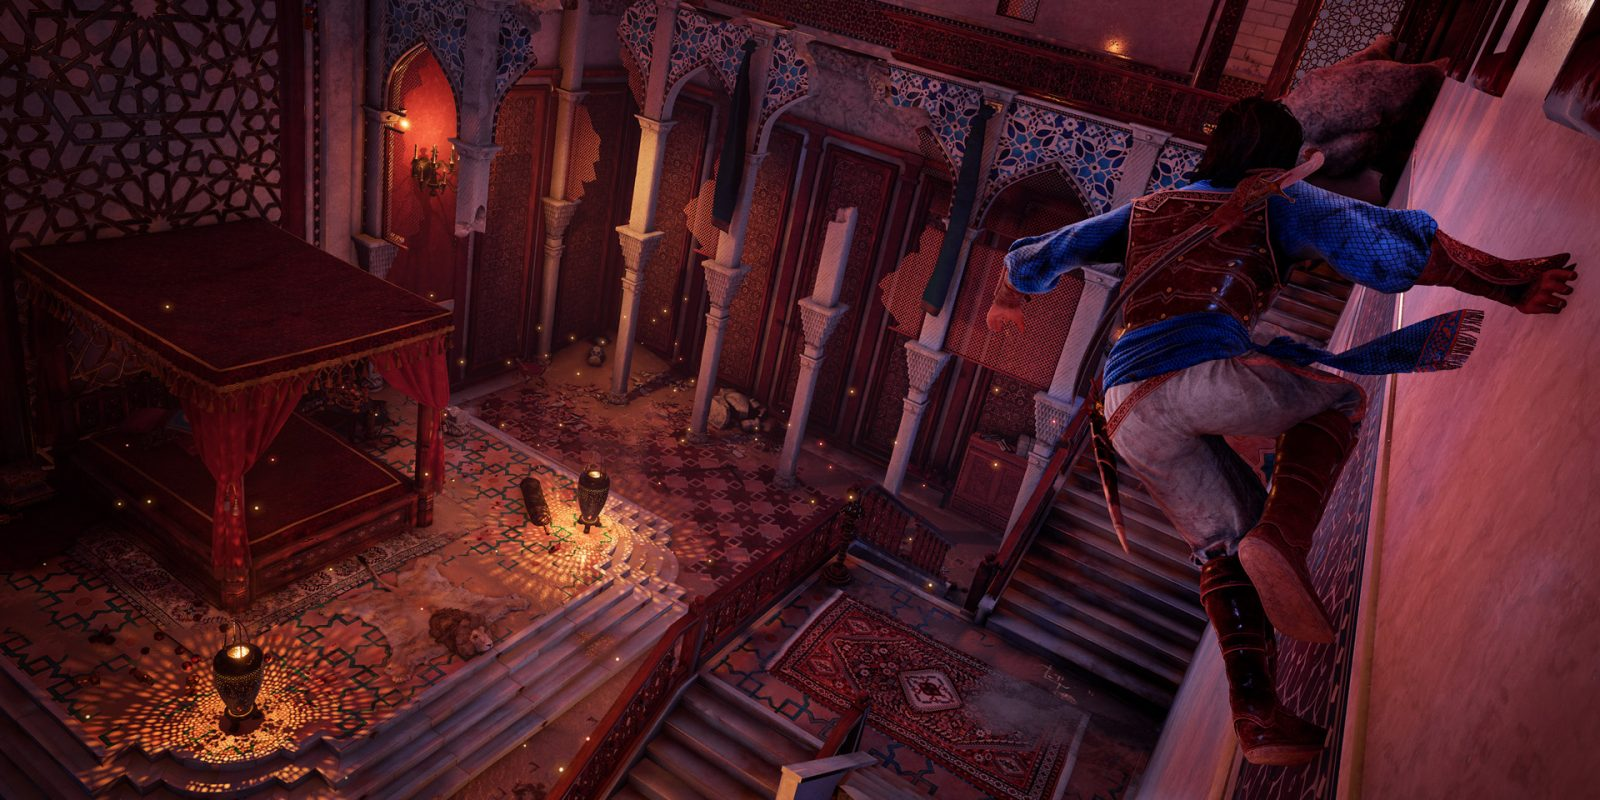 Why the Prince of Persia remake didn't quite land